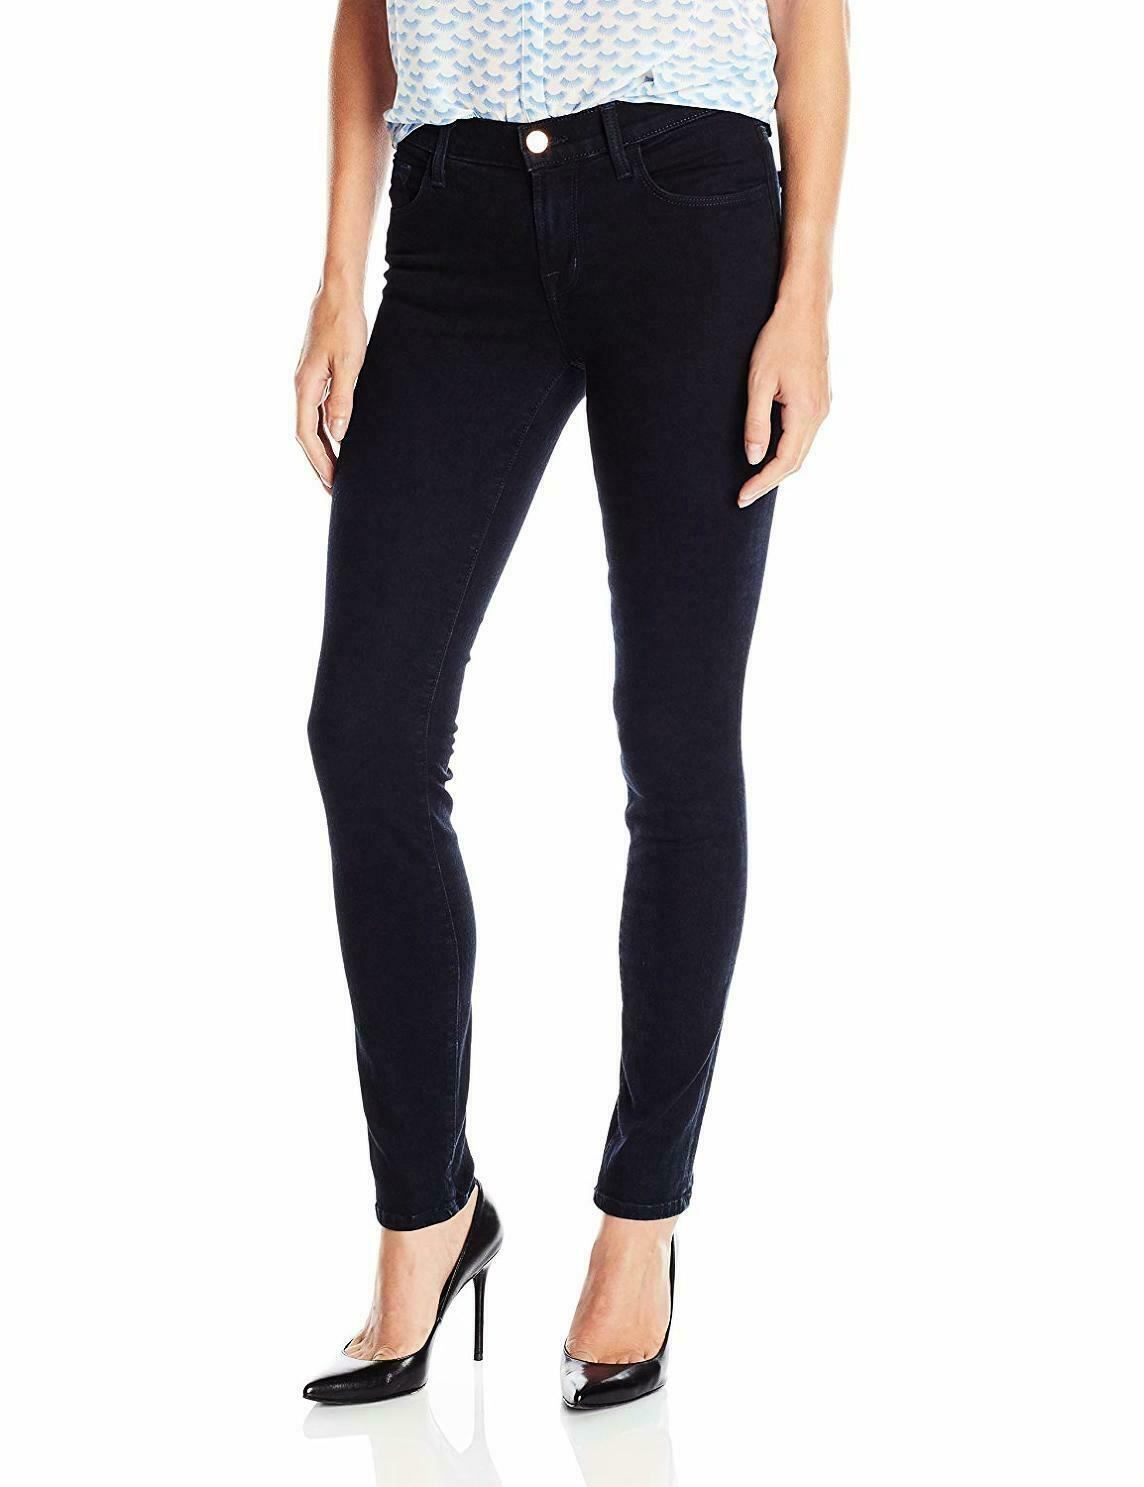 J Brand Jeans Women's 811 Mid Rise Skinny - Choose SZ color